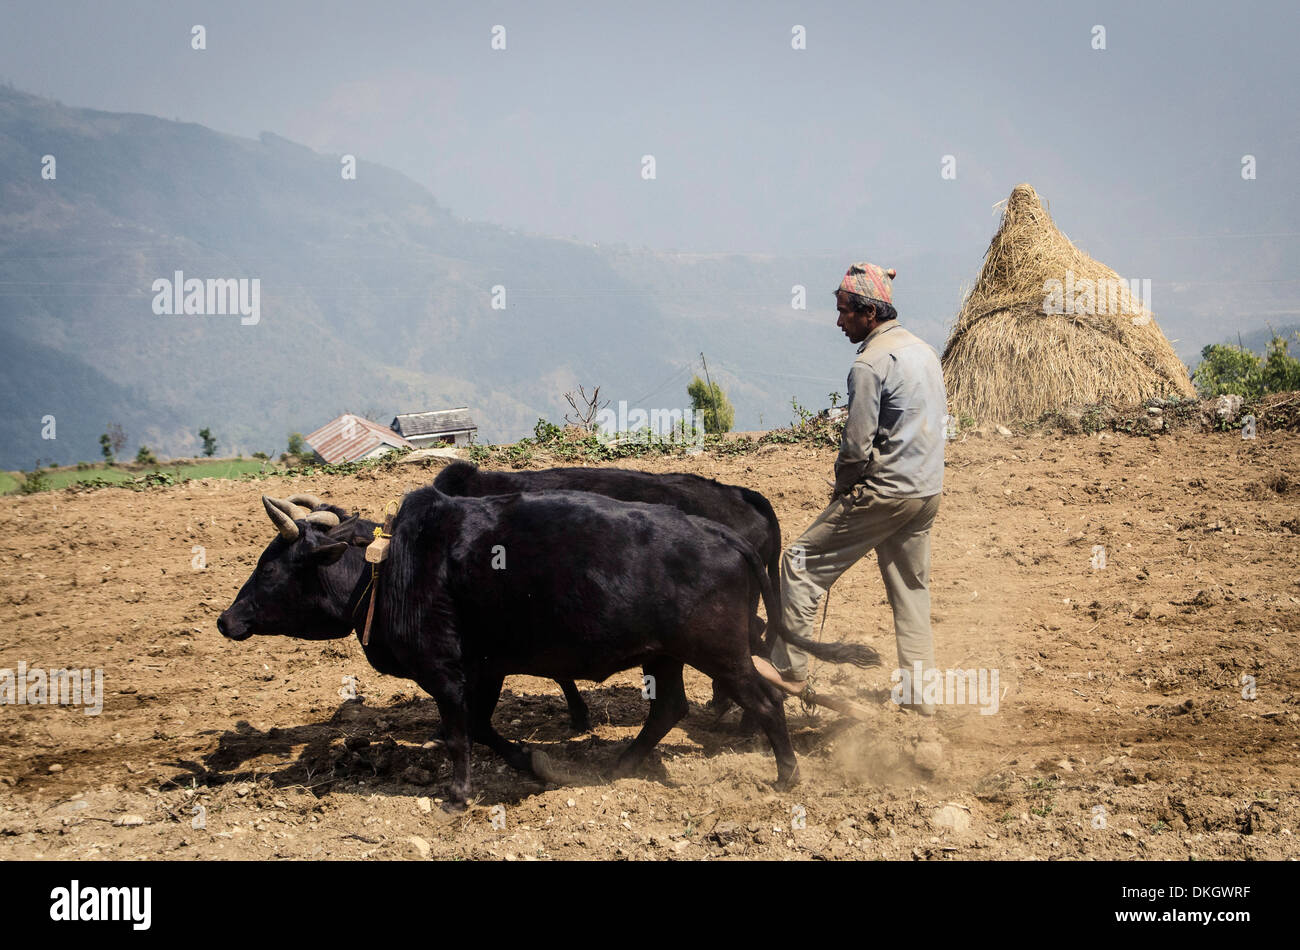 A man ploughs his terraced-field, Dhampus, Annapurna Conservation Area, Nepal, Asia - Stock Image